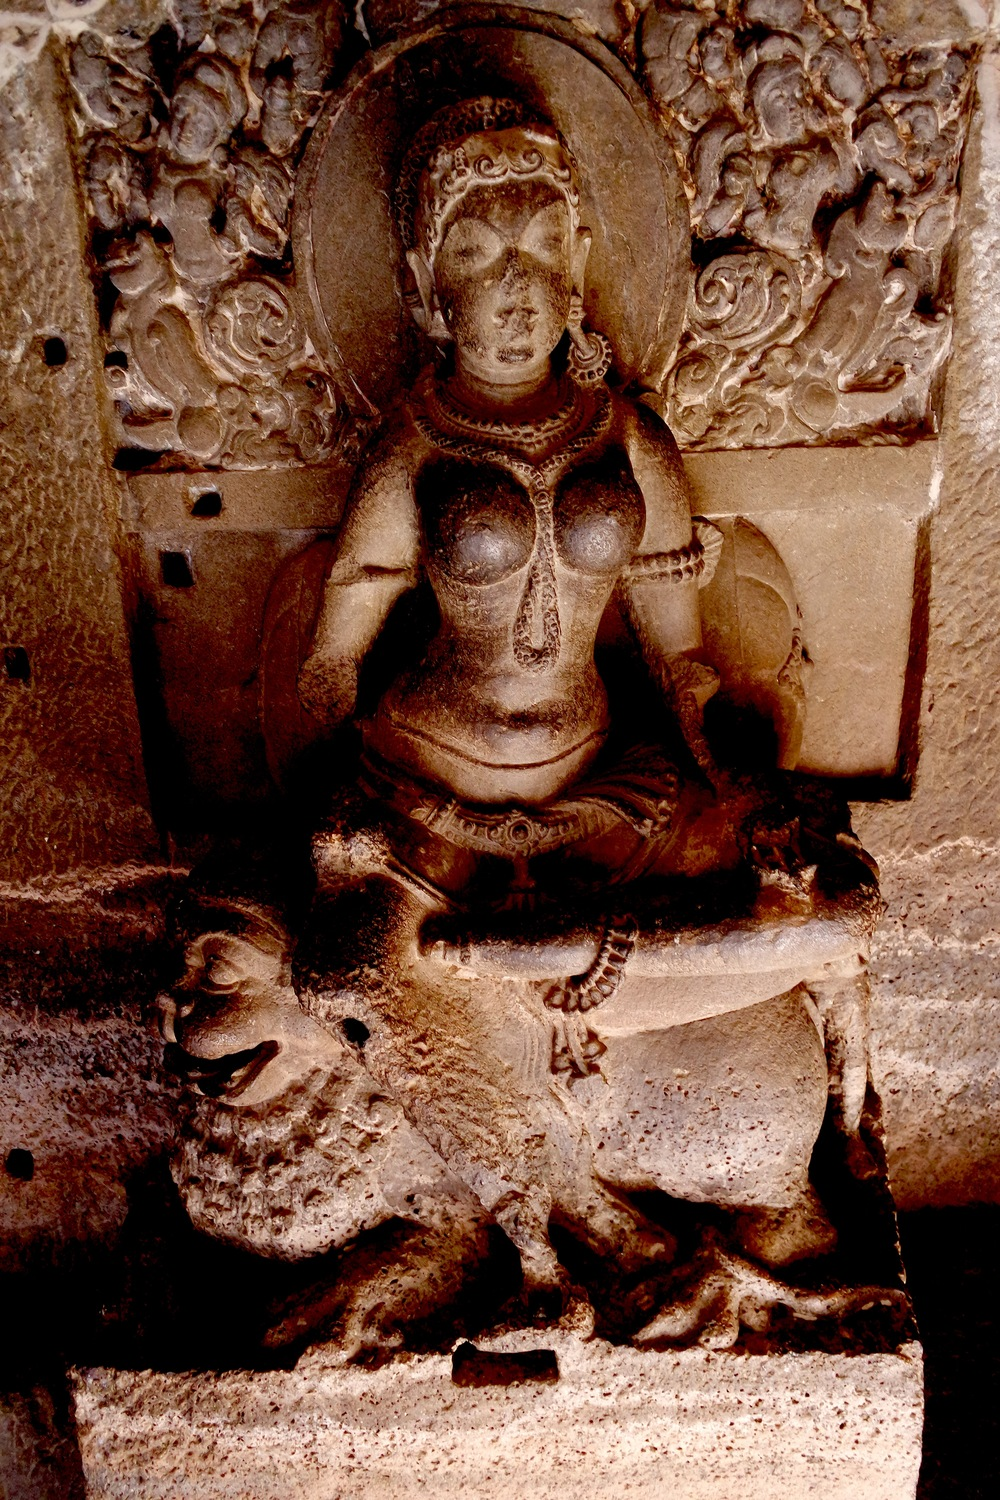 This statue in Cave 32 depicts either Ambika, the Jain mother goddess,or Siddhayika, a yakshini, or fairy-like creature. She's seated upon a lion beneath a tree heavy with fruit